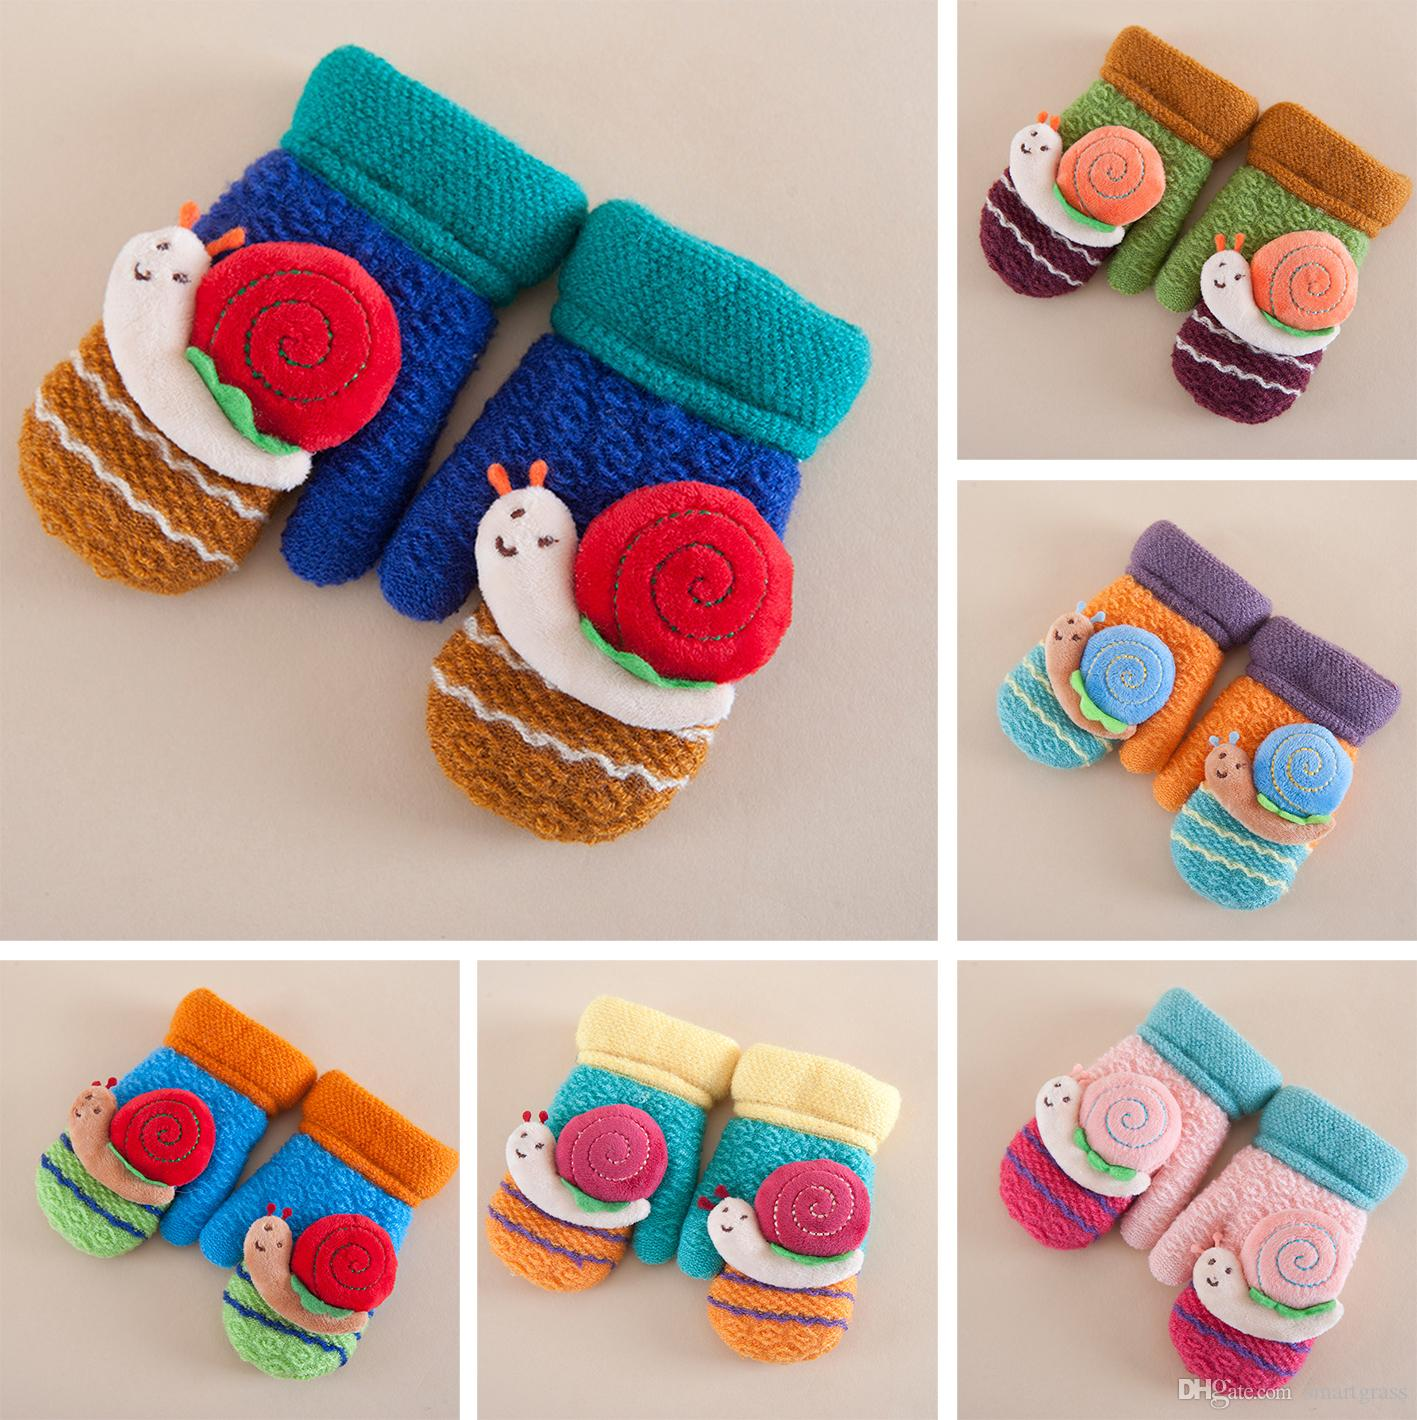 4929ea1ce928 Baby Knitting Winter Gloves Cute Fingerless Children Mittens Winter ...